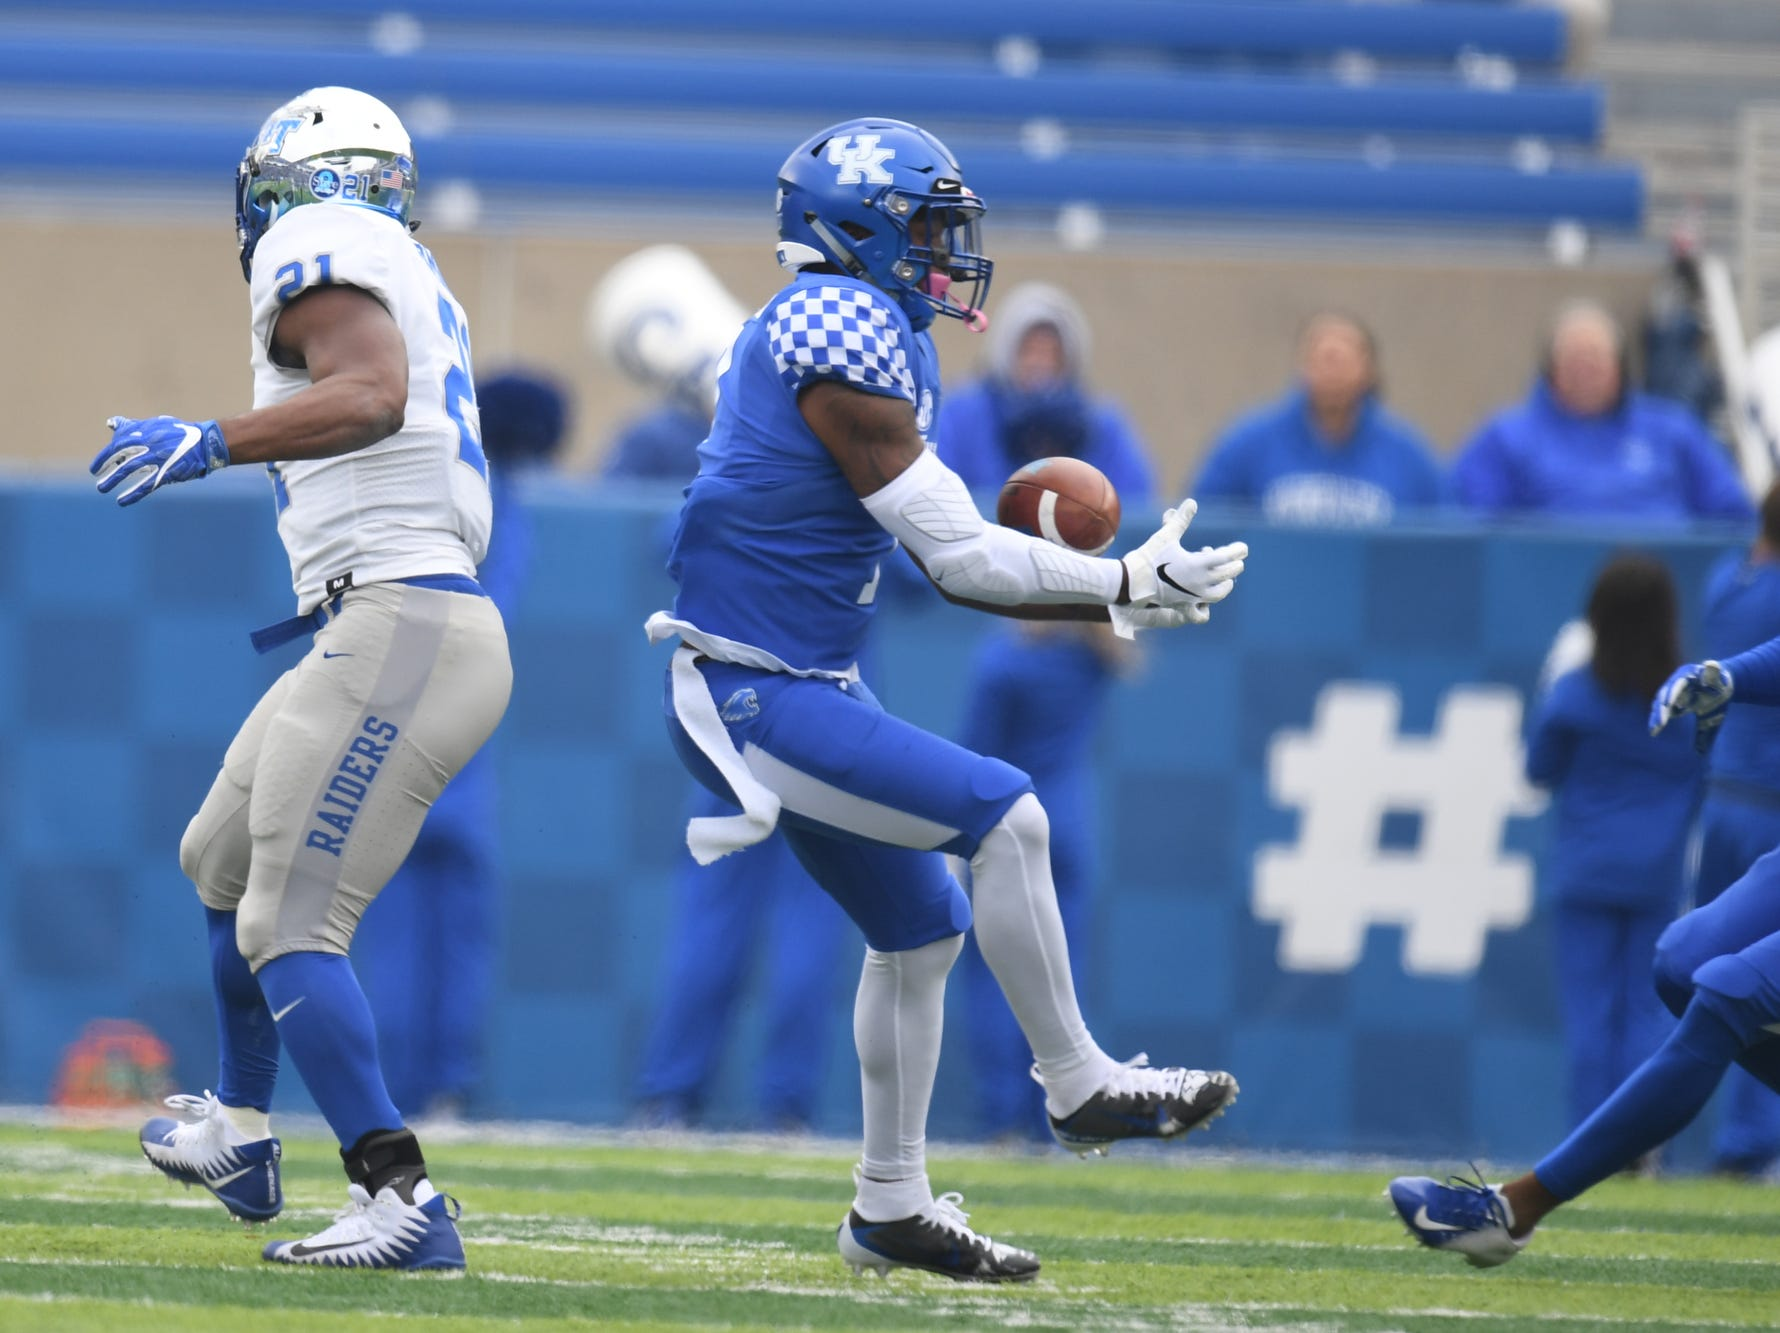 UK SS Mike Edwards intercepts the ball during the University of Kentucky football game against Middle Tennessee at Kroger Field in Lexington, Kentucky on Saturday, November 17, 2018.